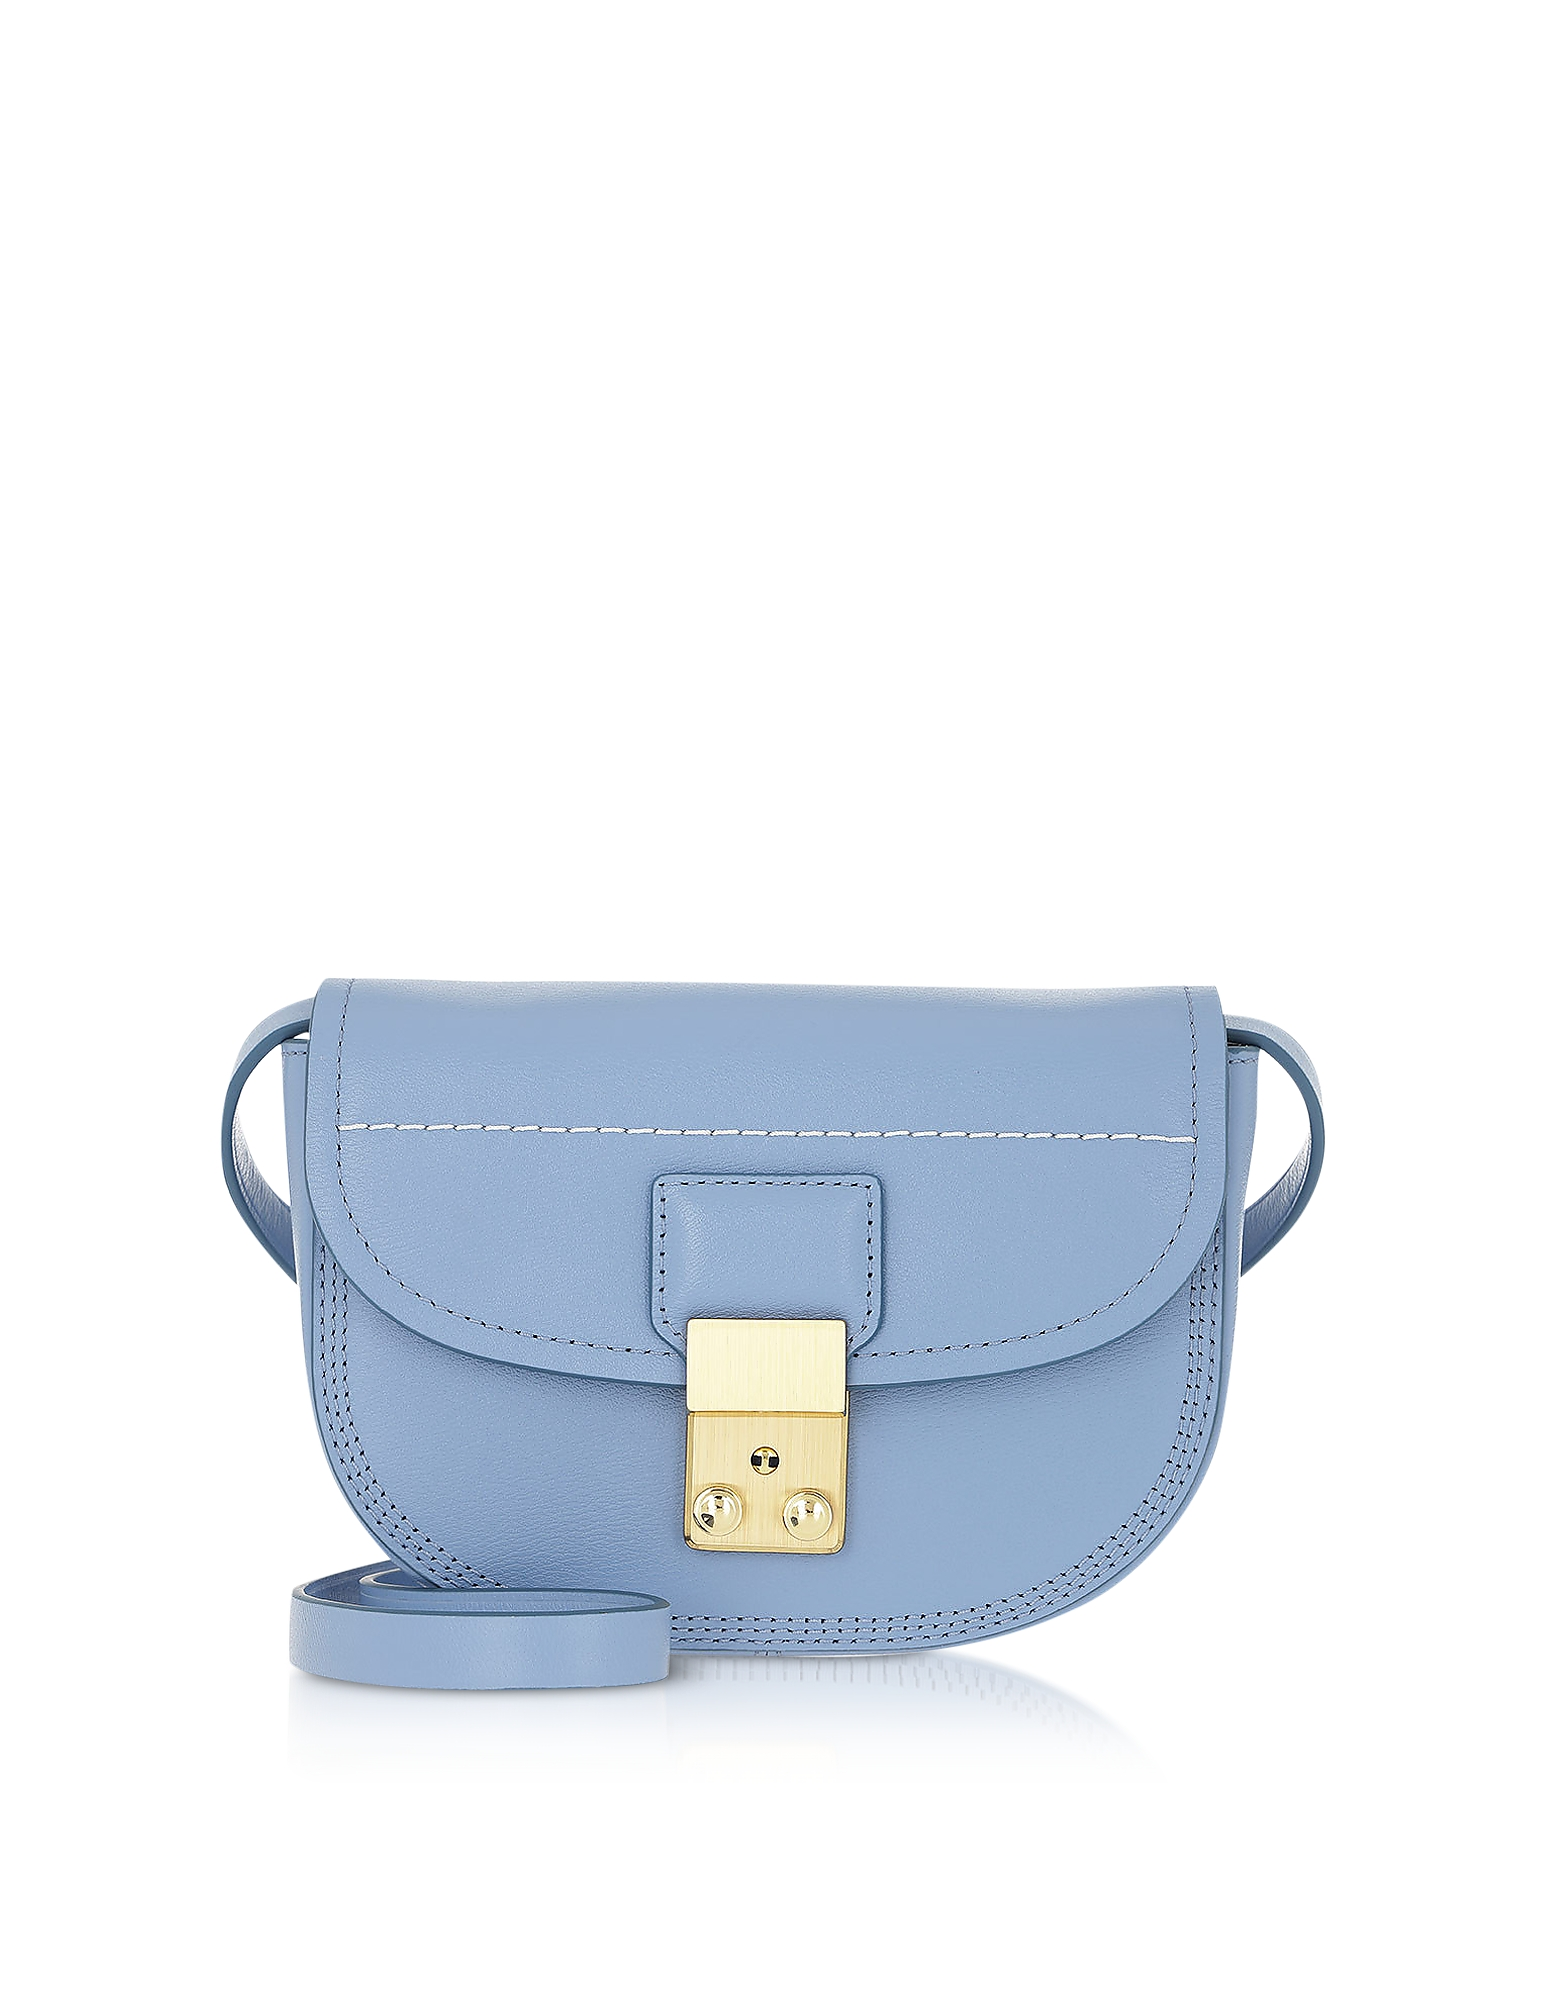 3.1 Phillip Lim Designer Handbags, Pashli Mini Saddle Belt Bag